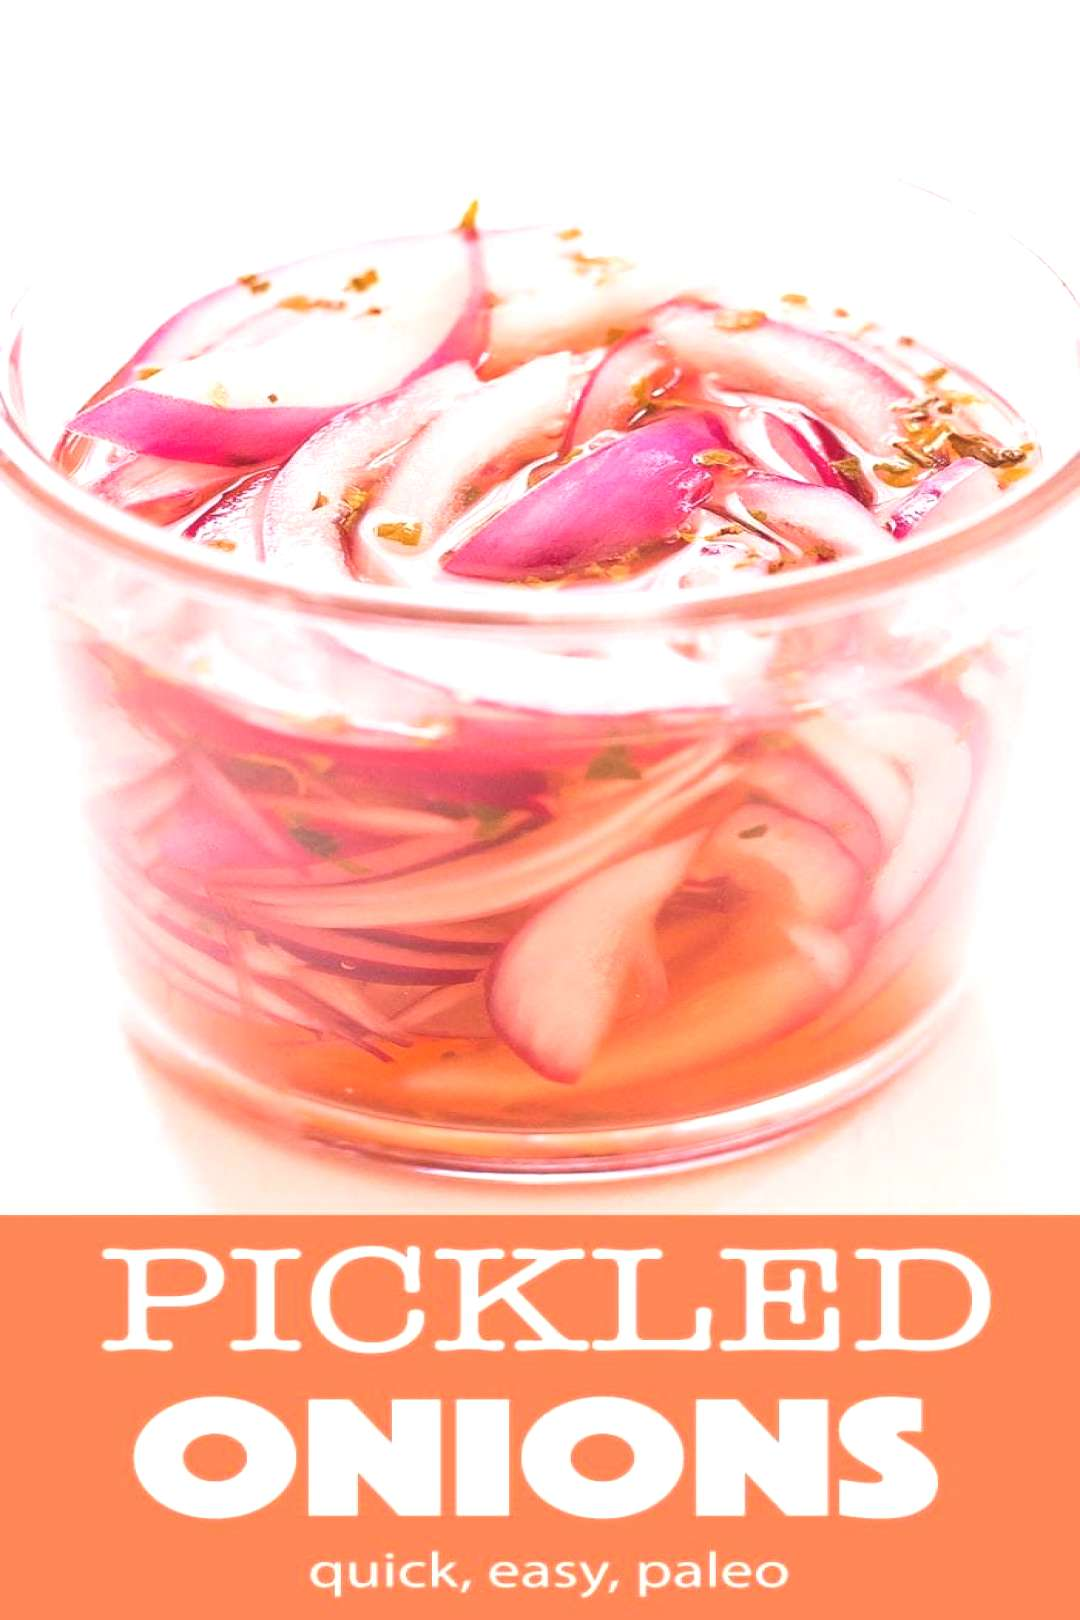 Learn how to make quick pickled onions and in less than 1 hour you have a delicious, crunchy condim